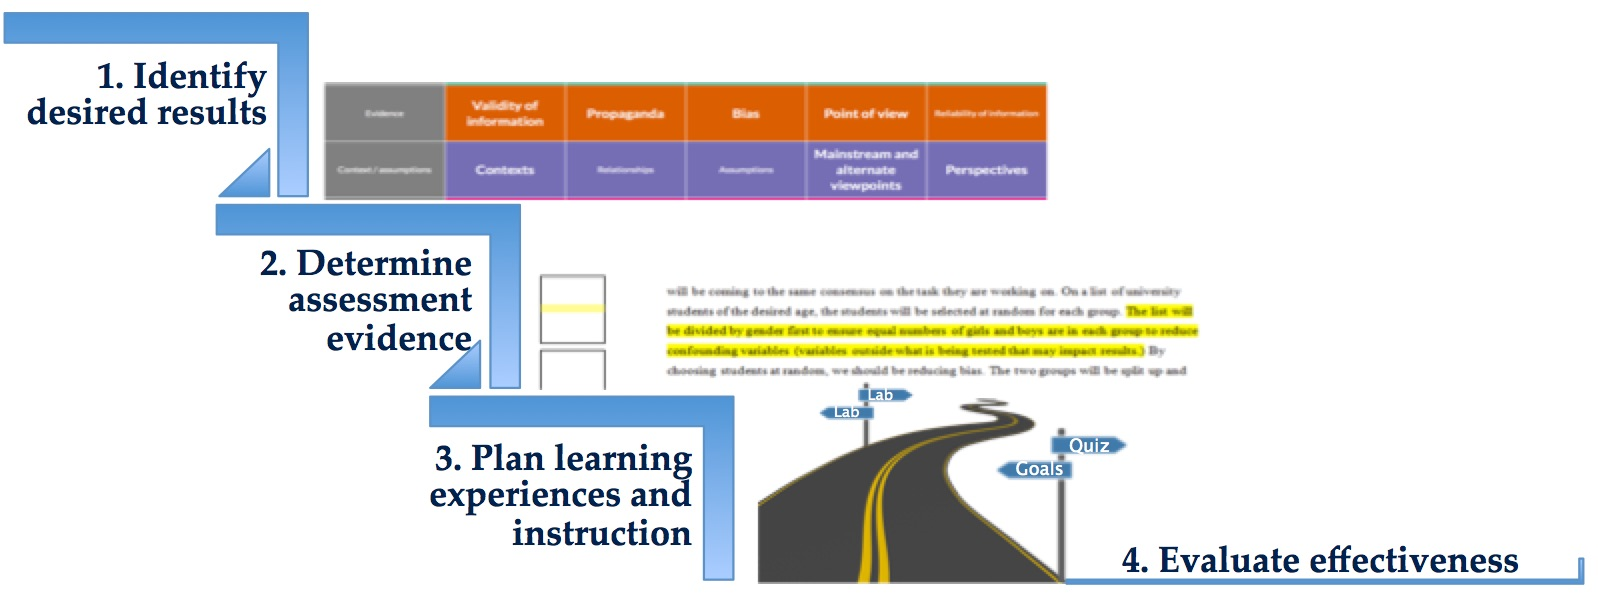 Graphic displaying steps of backward design: Identify desired results, determine assessment evidence, plan learning experiences and instruction, evaluate effectiveness